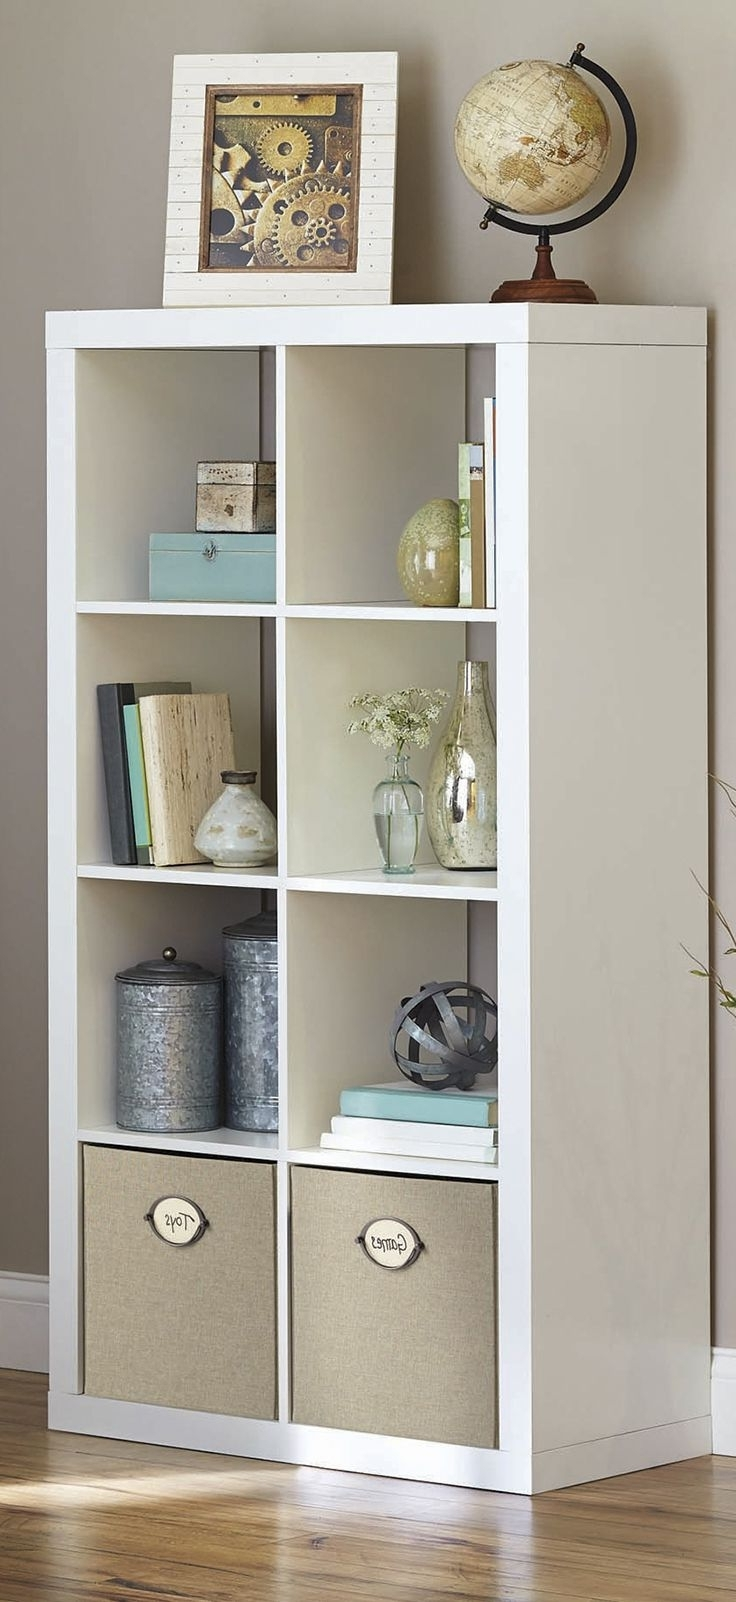 Furniture Home: Room Essentials Shelf Bookcase Beginnings Sauder Inside Well Liked Room Essentials 3 Shelf Bookcases (View 9 of 15)